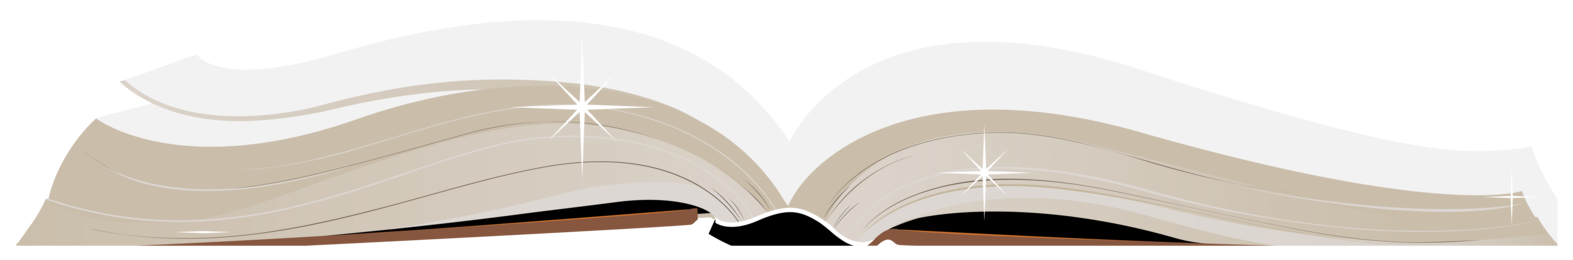 Open book image clipart clip library Open Book PNG ClipArt clip library